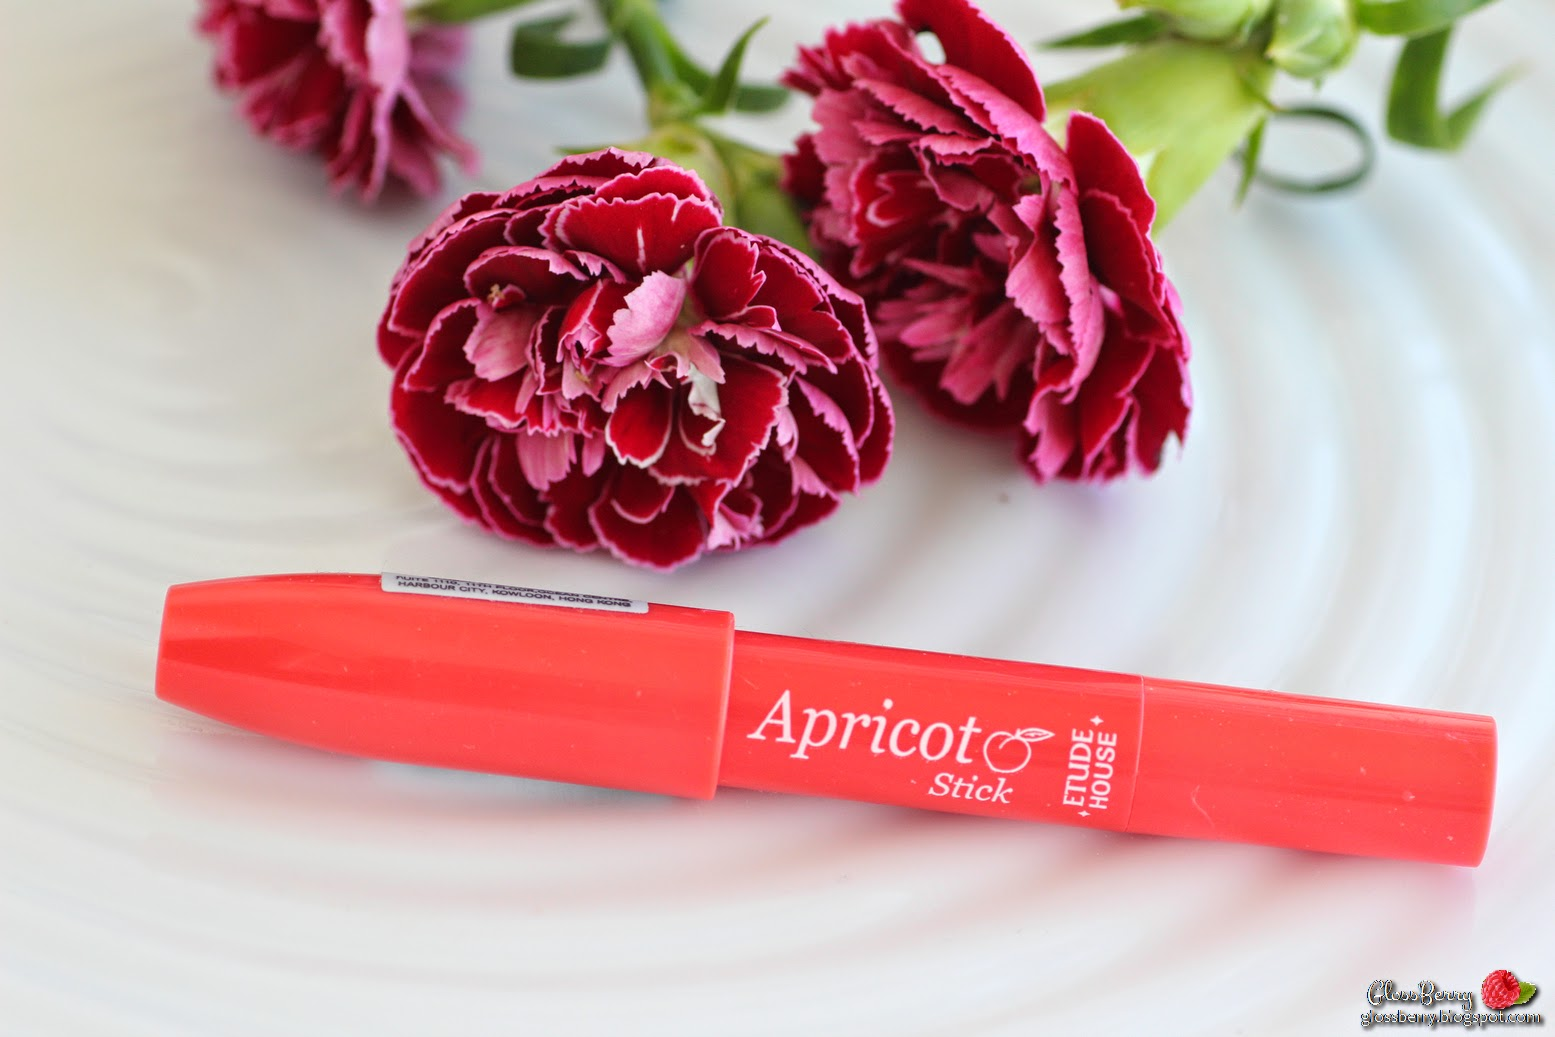 etude house apricot stick review swatch